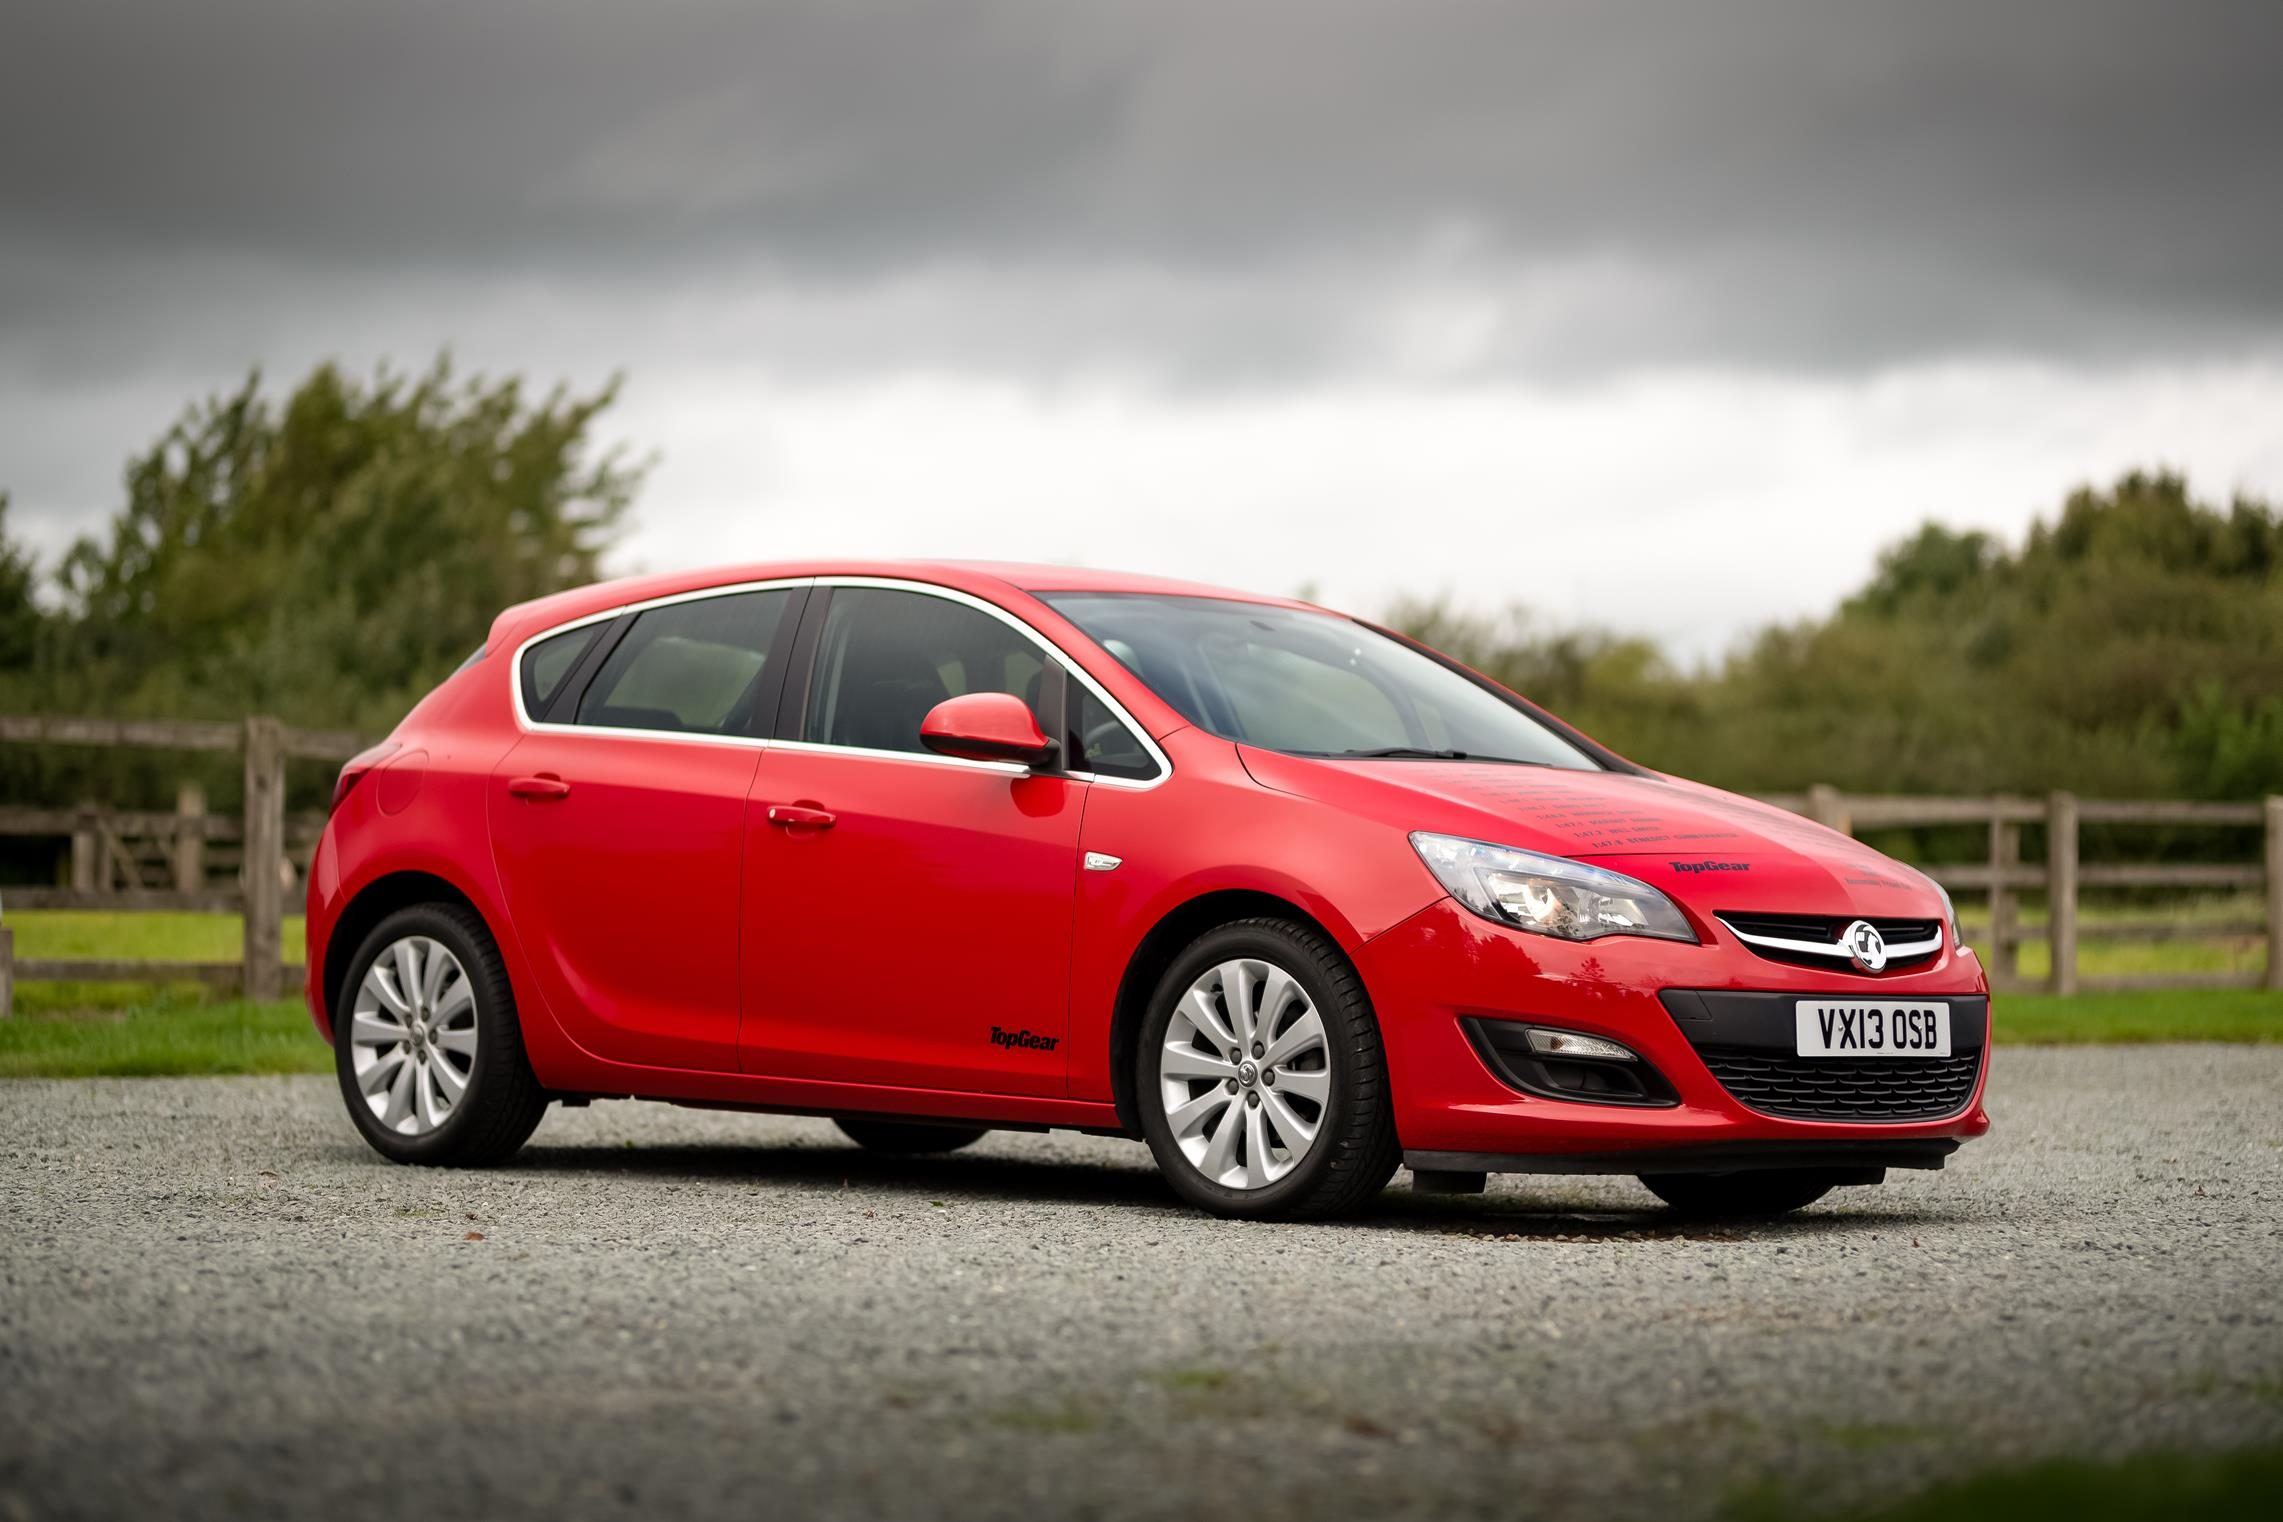 Vauxhall-Astra-Reasonably-Priced-Car-for-sale-7